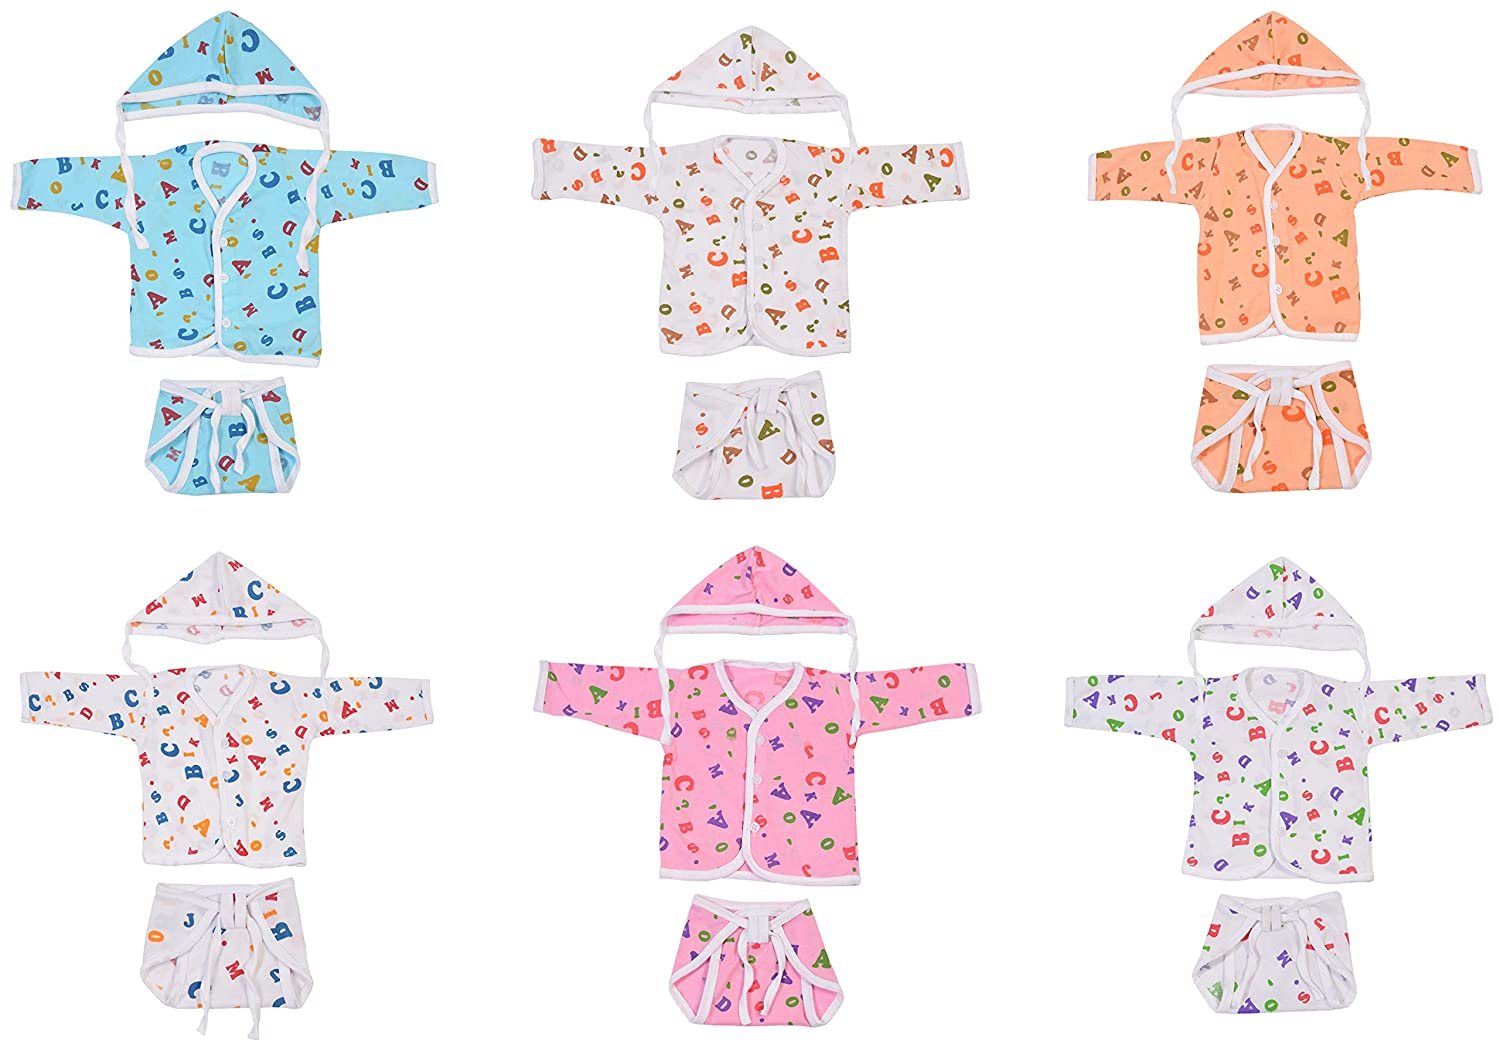 Baby Fly Baby Gift Pack of Baby Jhabla Set with Baby Nappy